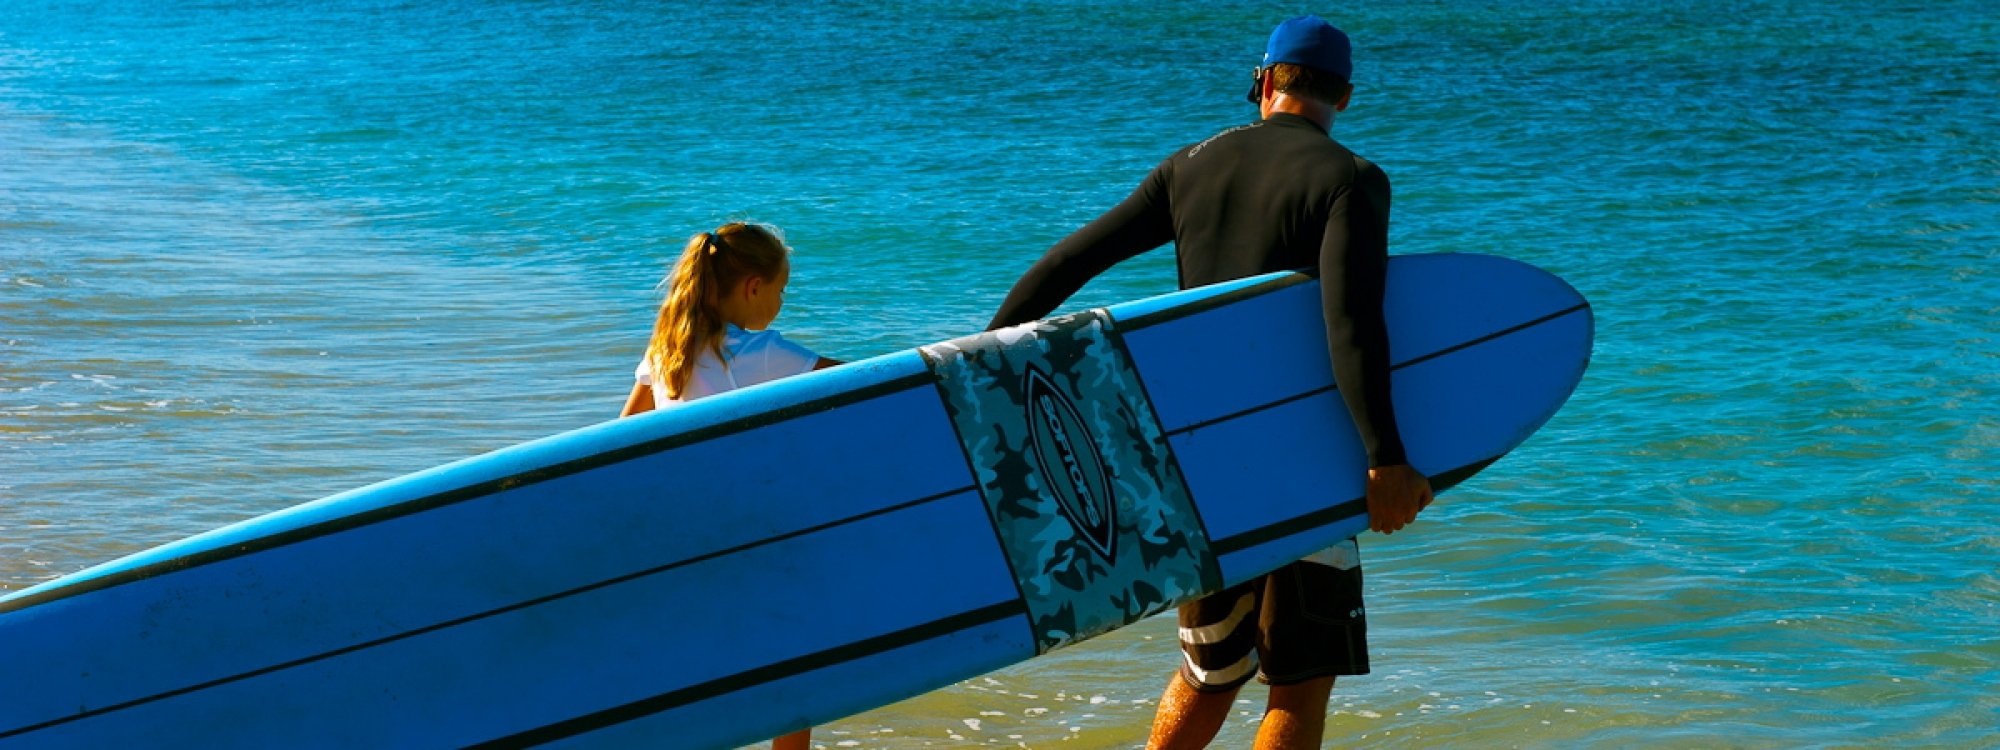 SSM Encourages All Newcomers To Join The Fun:  Here Nichole,  Who Is 9 Years Old And Autistic, Enters The Water With Brian For Her First Surfing Lesson.